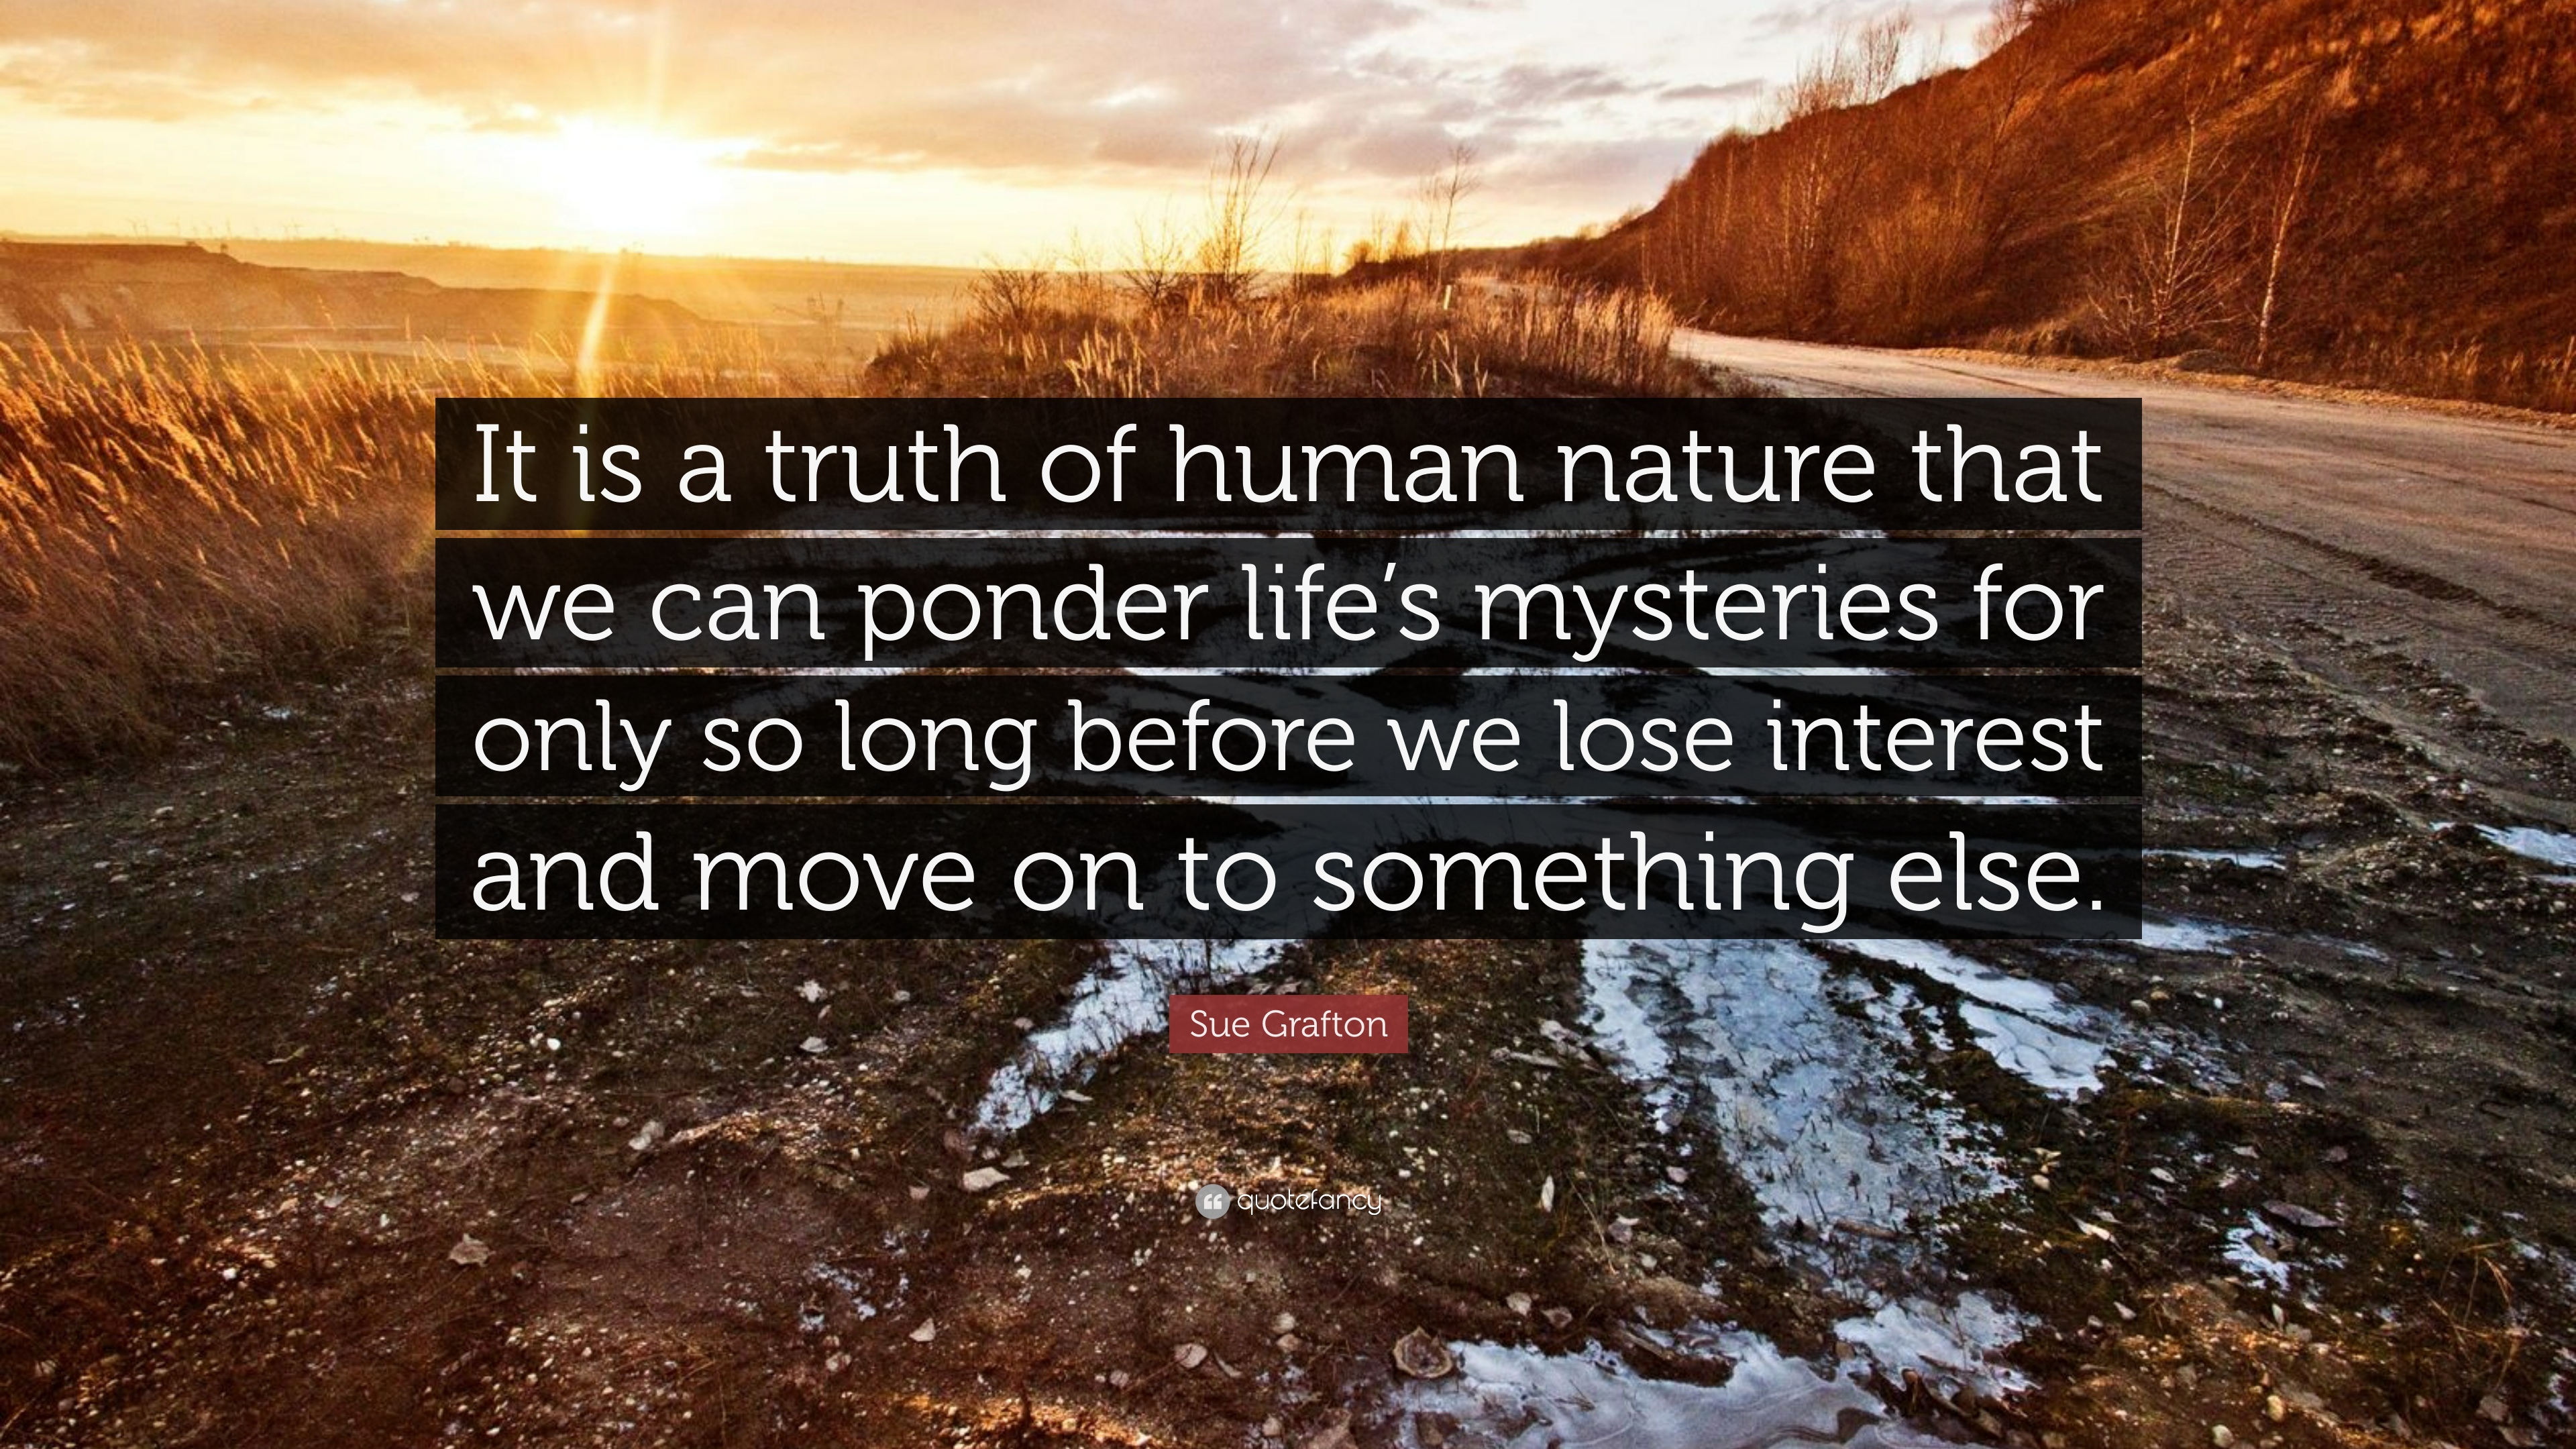 Truths Of Human Nature